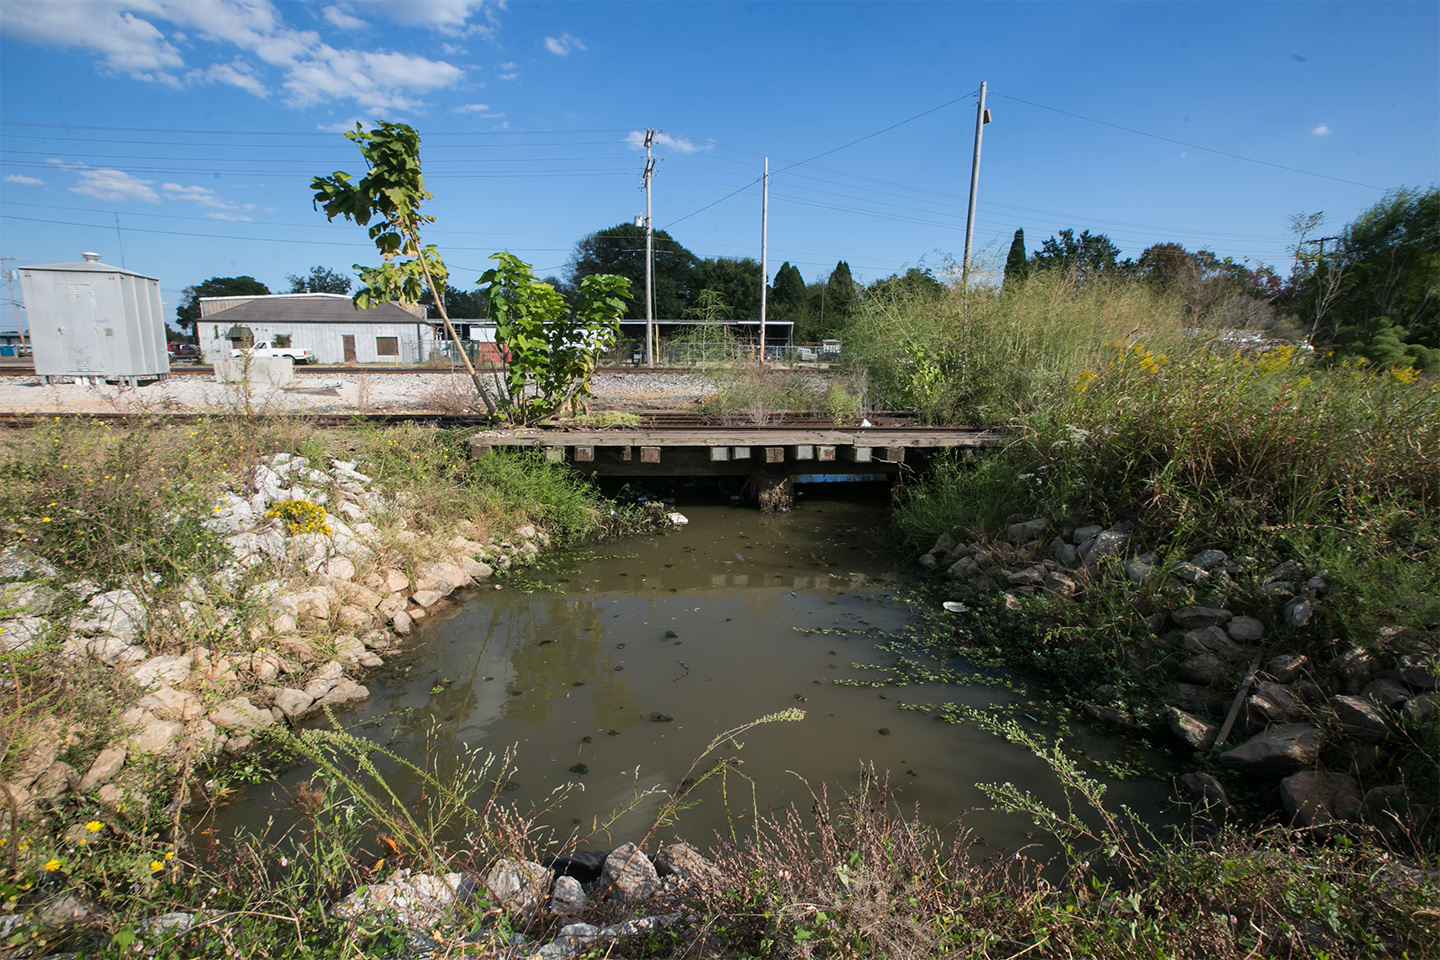 A polluted ditch containing creosote runs along the property of the old Kerr McGee site and 14th Avenue in Columbus, Mississippi.